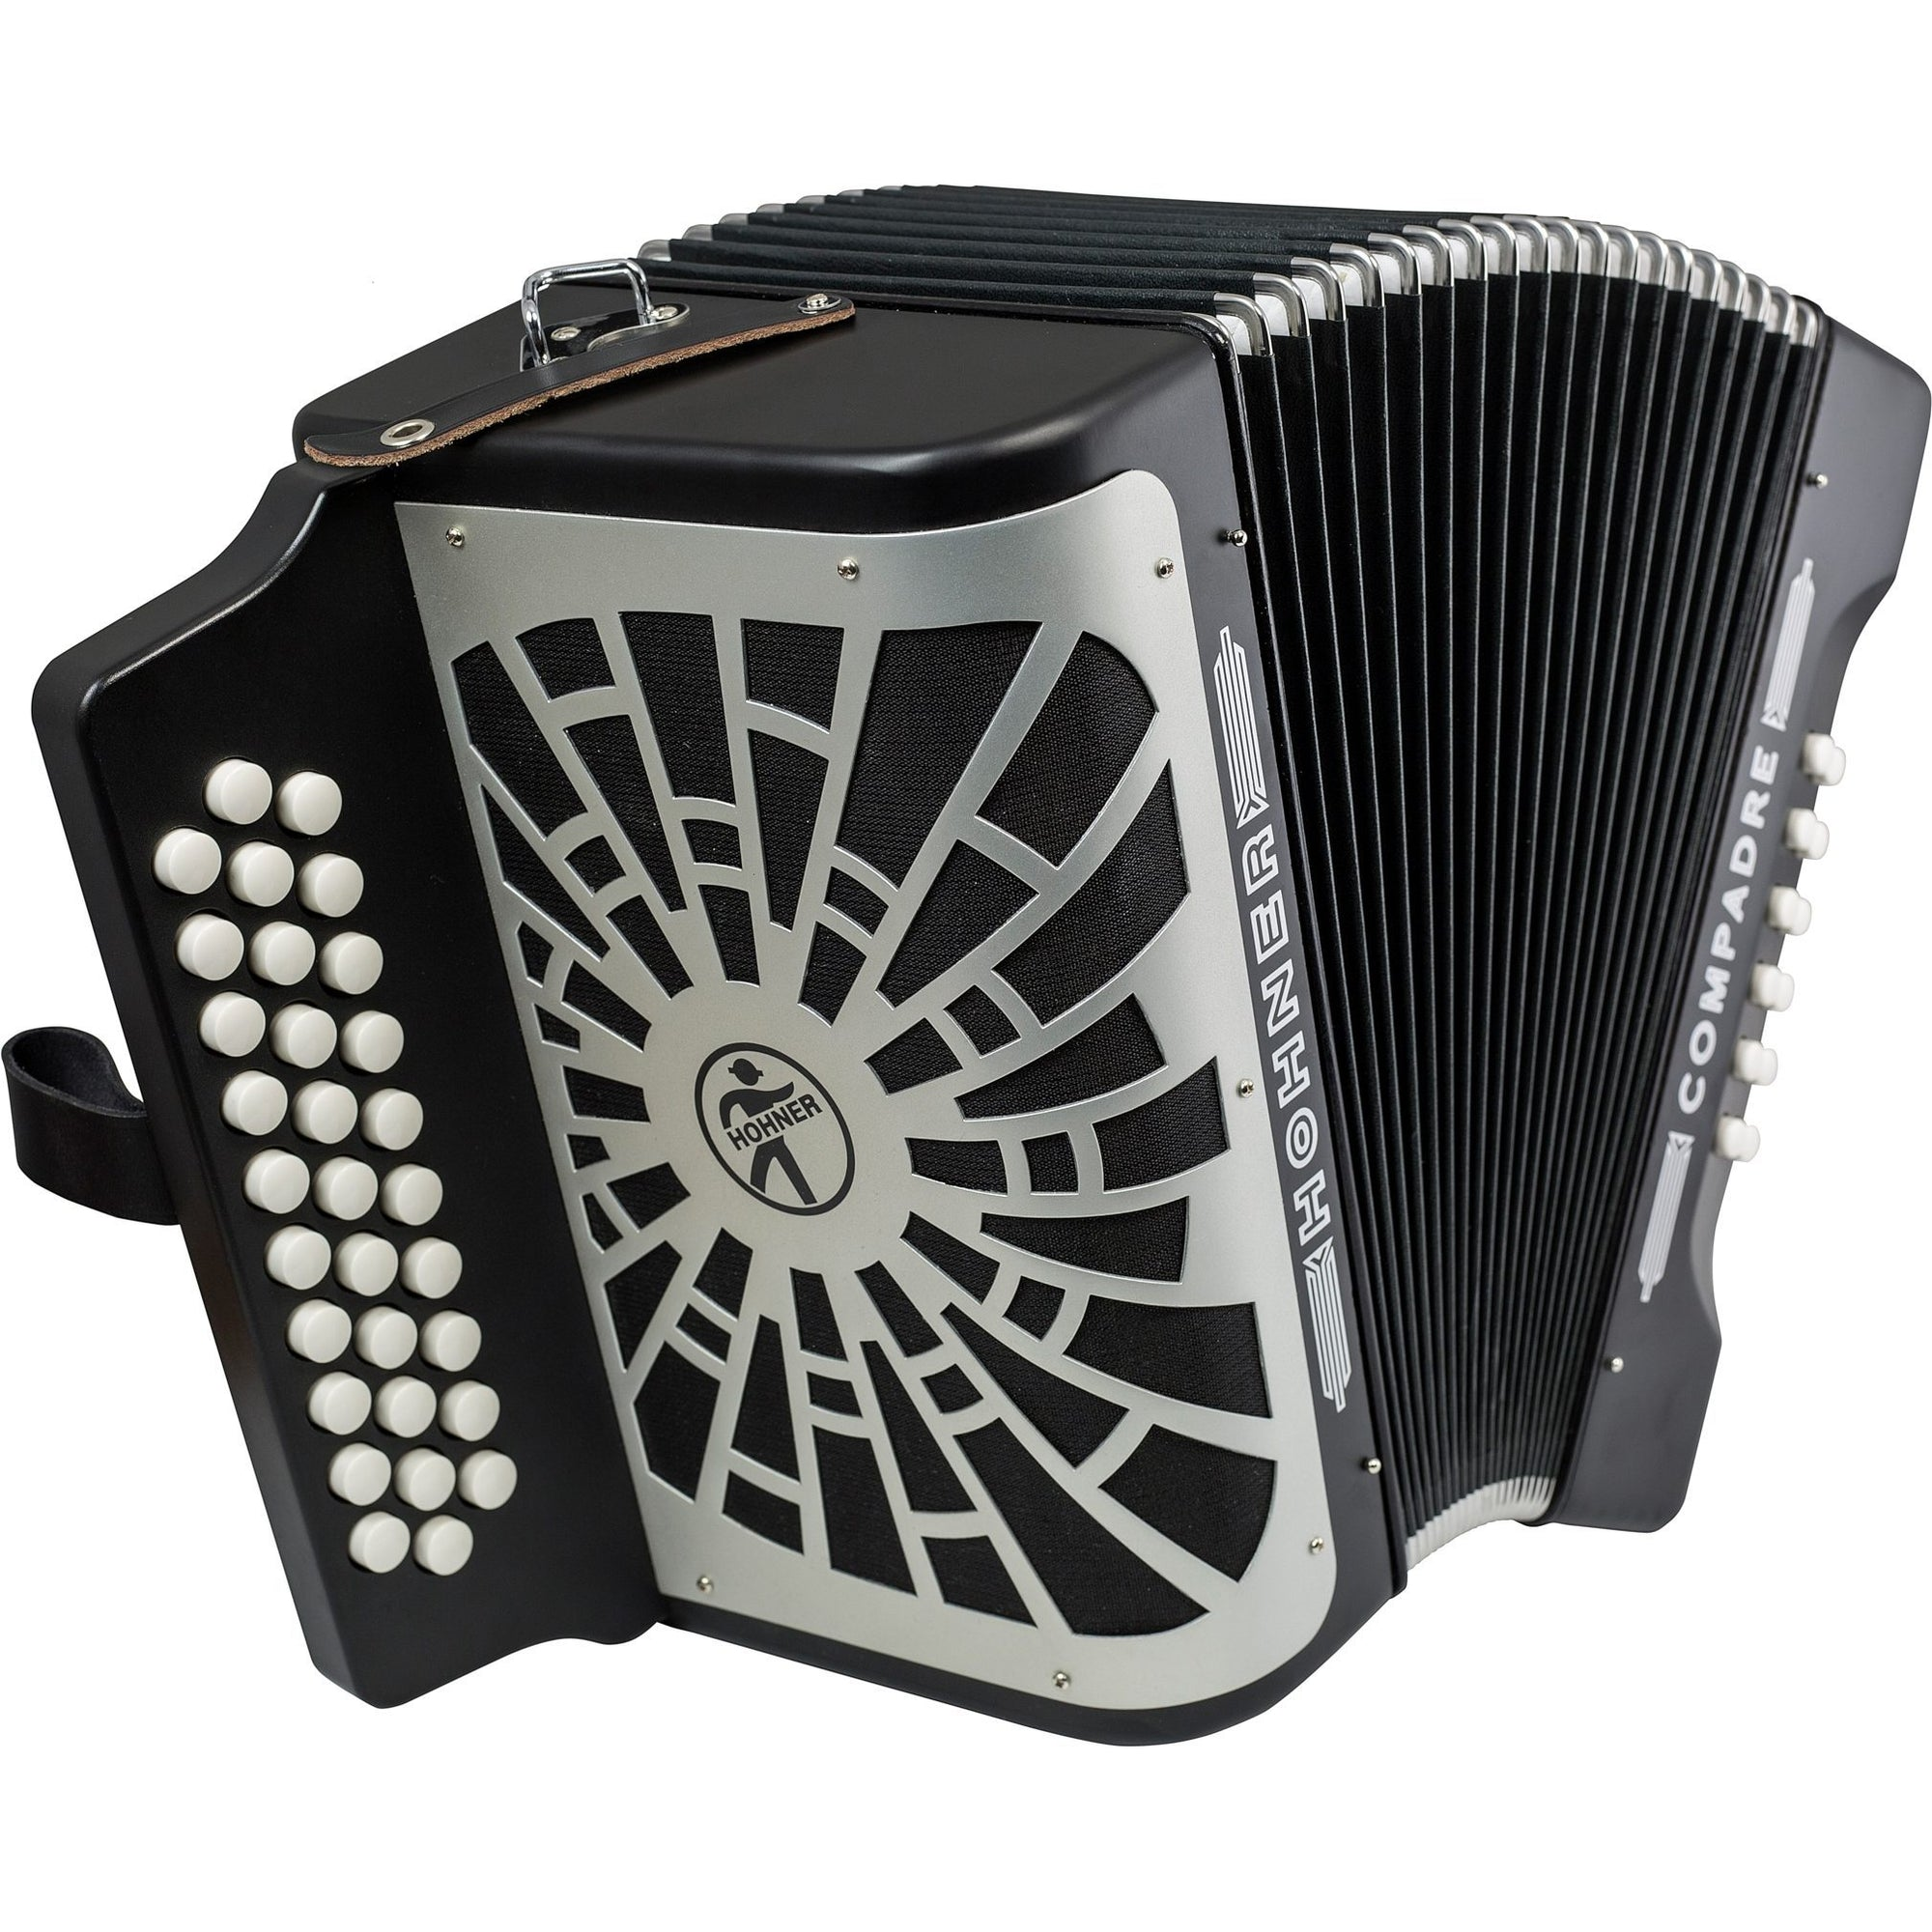 Hohner Compadre Accordion (with Gig Bag), Black, G/C/F, with Gig Bag